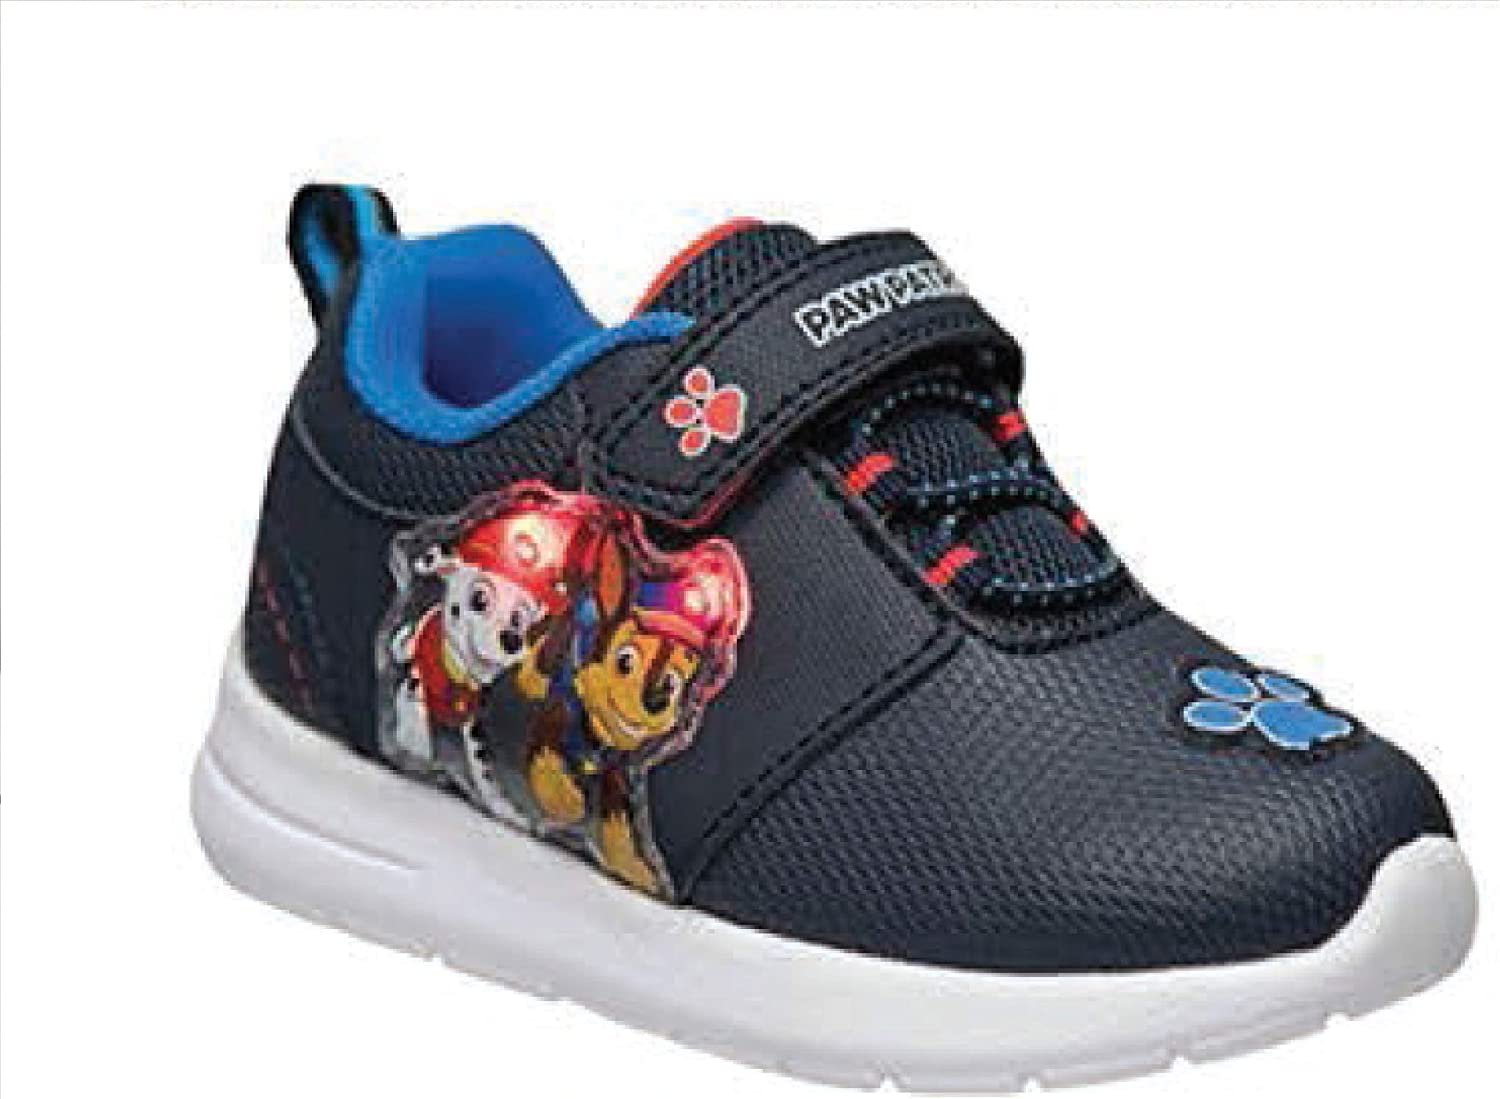 NEW Nickelodeon Paw Patrol Toddler Boy/'s Athletic Tennis Shoes Size 7